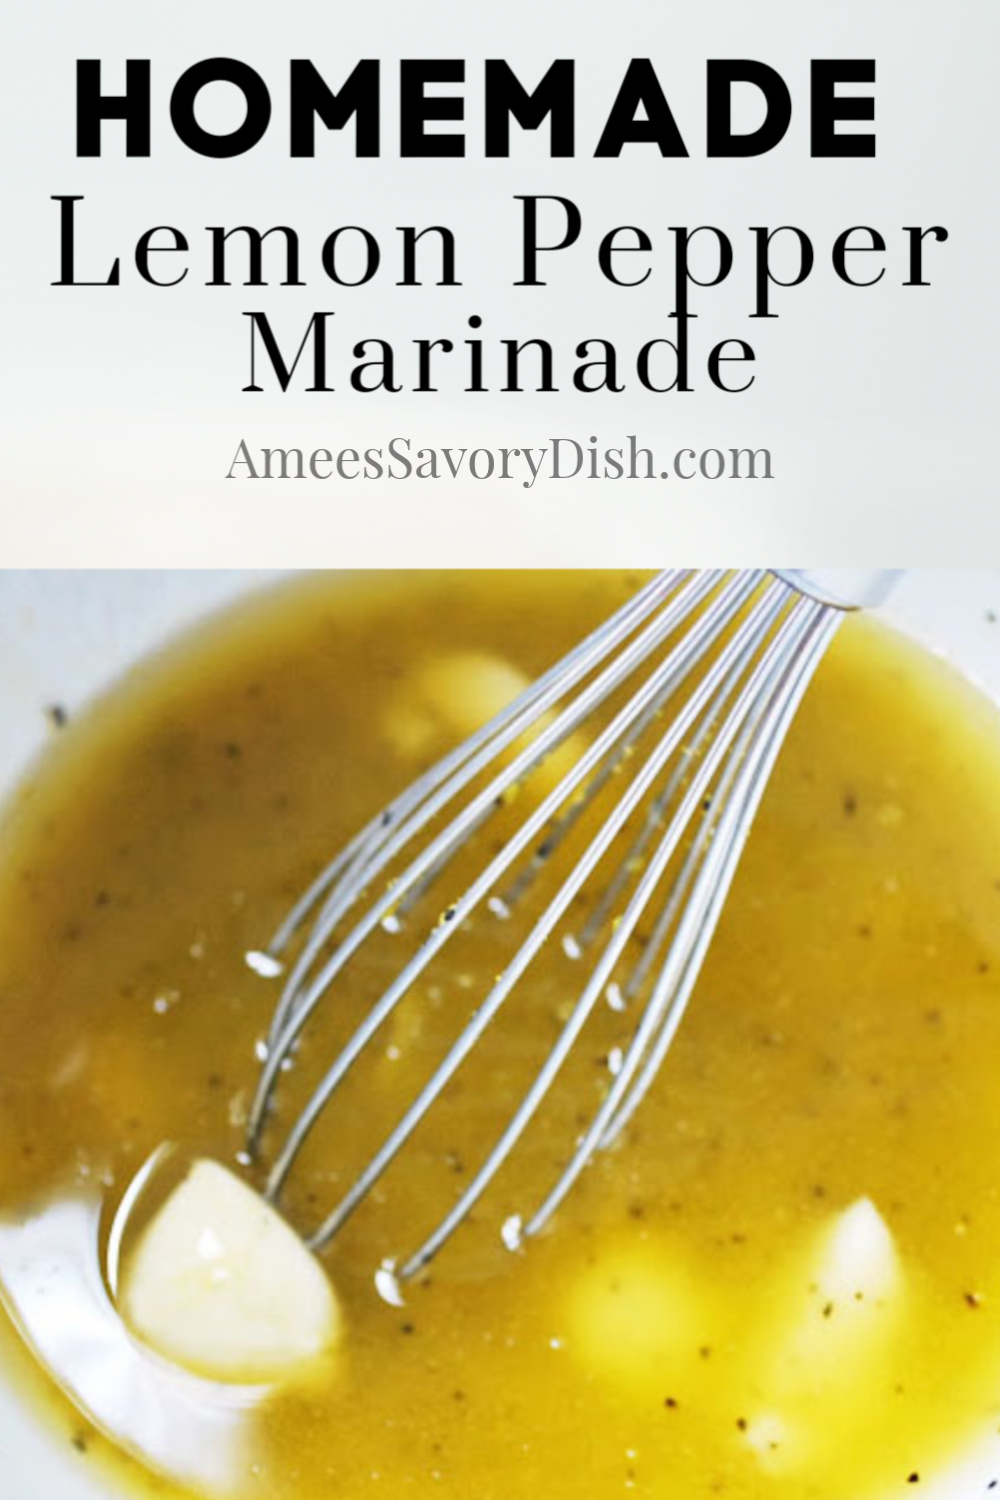 Lemon pepper marinade is a simple but flavorful marinade for chicken or shrimp. This easy marinade recipe can also be used to make a delicious, tangy salad dressing! #marinade #lemonpeppermarinade #chickenmarinade via @Ameecooks